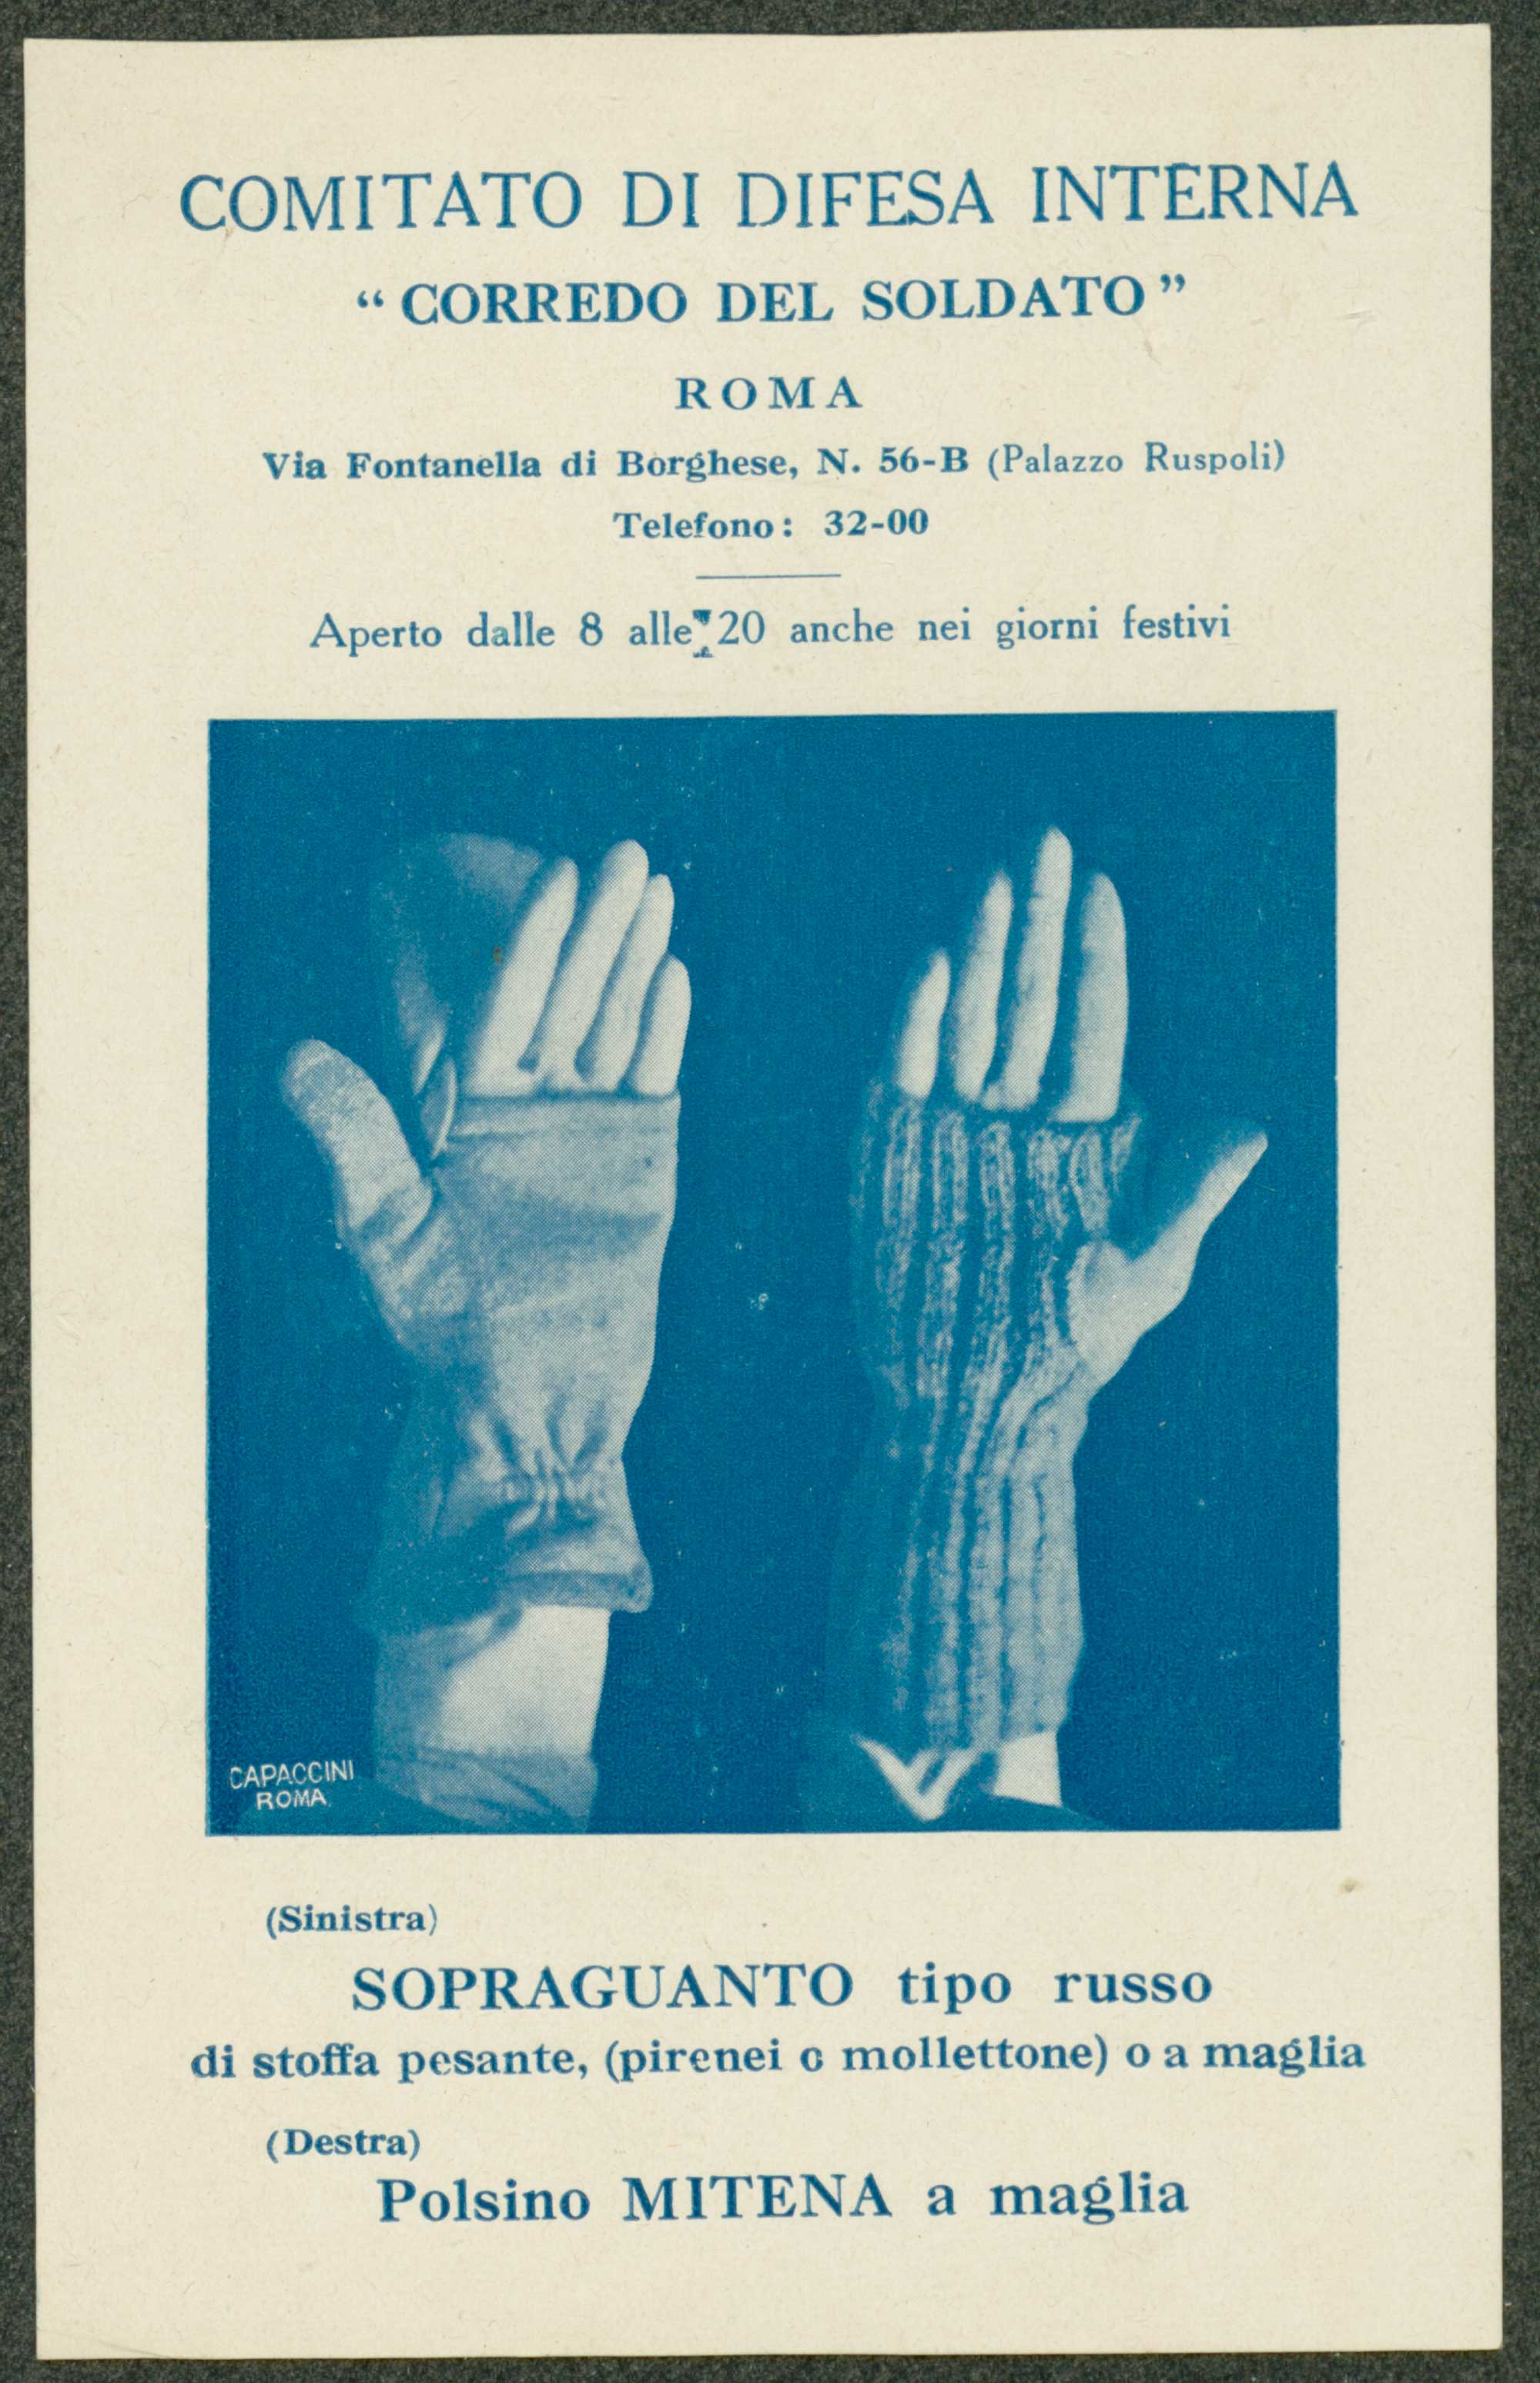 Russian-style overgloves made of heavy cloth and knitted mittens were part of a set of belongings every Italian soldier needed to take with him when he joined the army.